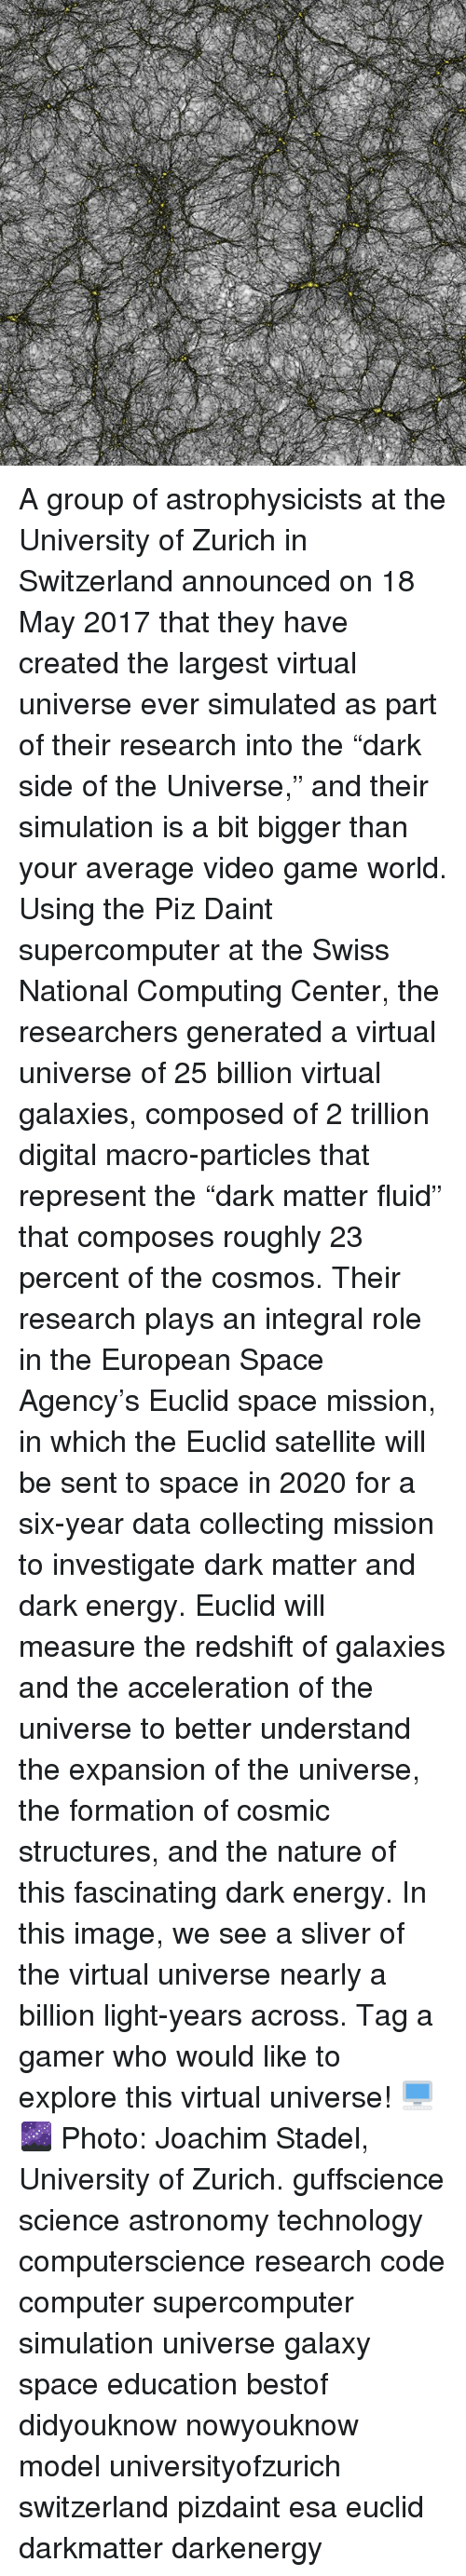 """virtualization: A group of astrophysicists at the University of Zurich in Switzerland announced on 18 May 2017 that they have created the largest virtual universe ever simulated as part of their research into the """"dark side of the Universe,"""" and their simulation is a bit bigger than your average video game world. Using the Piz Daint supercomputer at the Swiss National Computing Center, the researchers generated a virtual universe of 25 billion virtual galaxies, composed of 2 trillion digital macro-particles that represent the """"dark matter fluid"""" that composes roughly 23 percent of the cosmos. Their research plays an integral role in the European Space Agency's Euclid space mission, in which the Euclid satellite will be sent to space in 2020 for a six-year data collecting mission to investigate dark matter and dark energy. Euclid will measure the redshift of galaxies and the acceleration of the universe to better understand the expansion of the universe, the formation of cosmic structures, and the nature of this fascinating dark energy. In this image, we see a sliver of the virtual universe nearly a billion light-years across. Tag a gamer who would like to explore this virtual universe! 🖥️🌌 Photo: Joachim Stadel, University of Zurich. guffscience science astronomy technology computerscience research code computer supercomputer simulation universe galaxy space education bestof didyouknow nowyouknow model universityofzurich switzerland pizdaint esa euclid darkmatter darkenergy"""